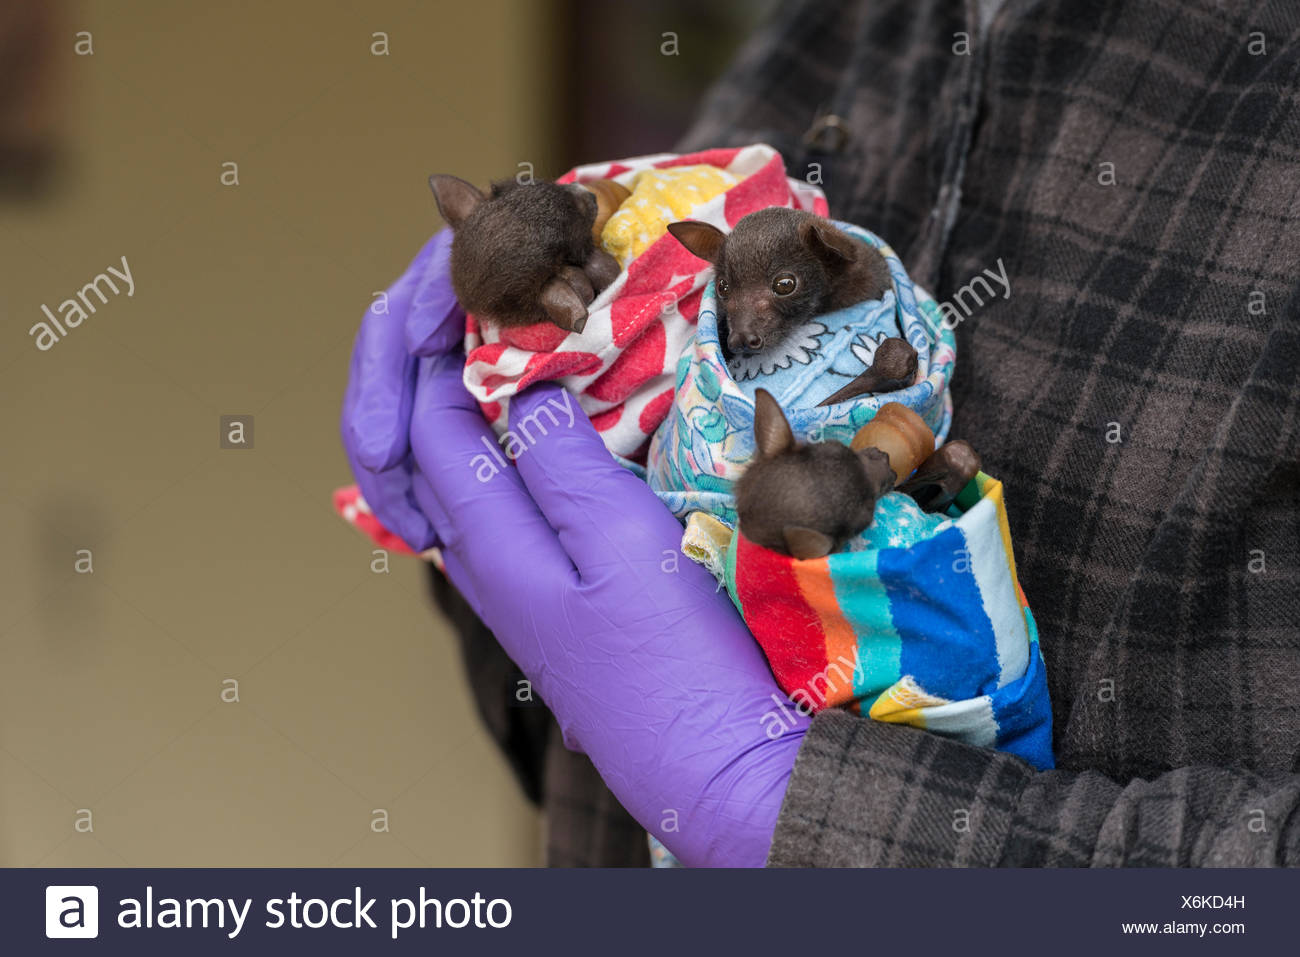 Tolga Bat Hospital volunteer handling Little red flying foxes (Pteropus scapulatus) babies wrapped in nappies cuddling a pillow - Stock Image